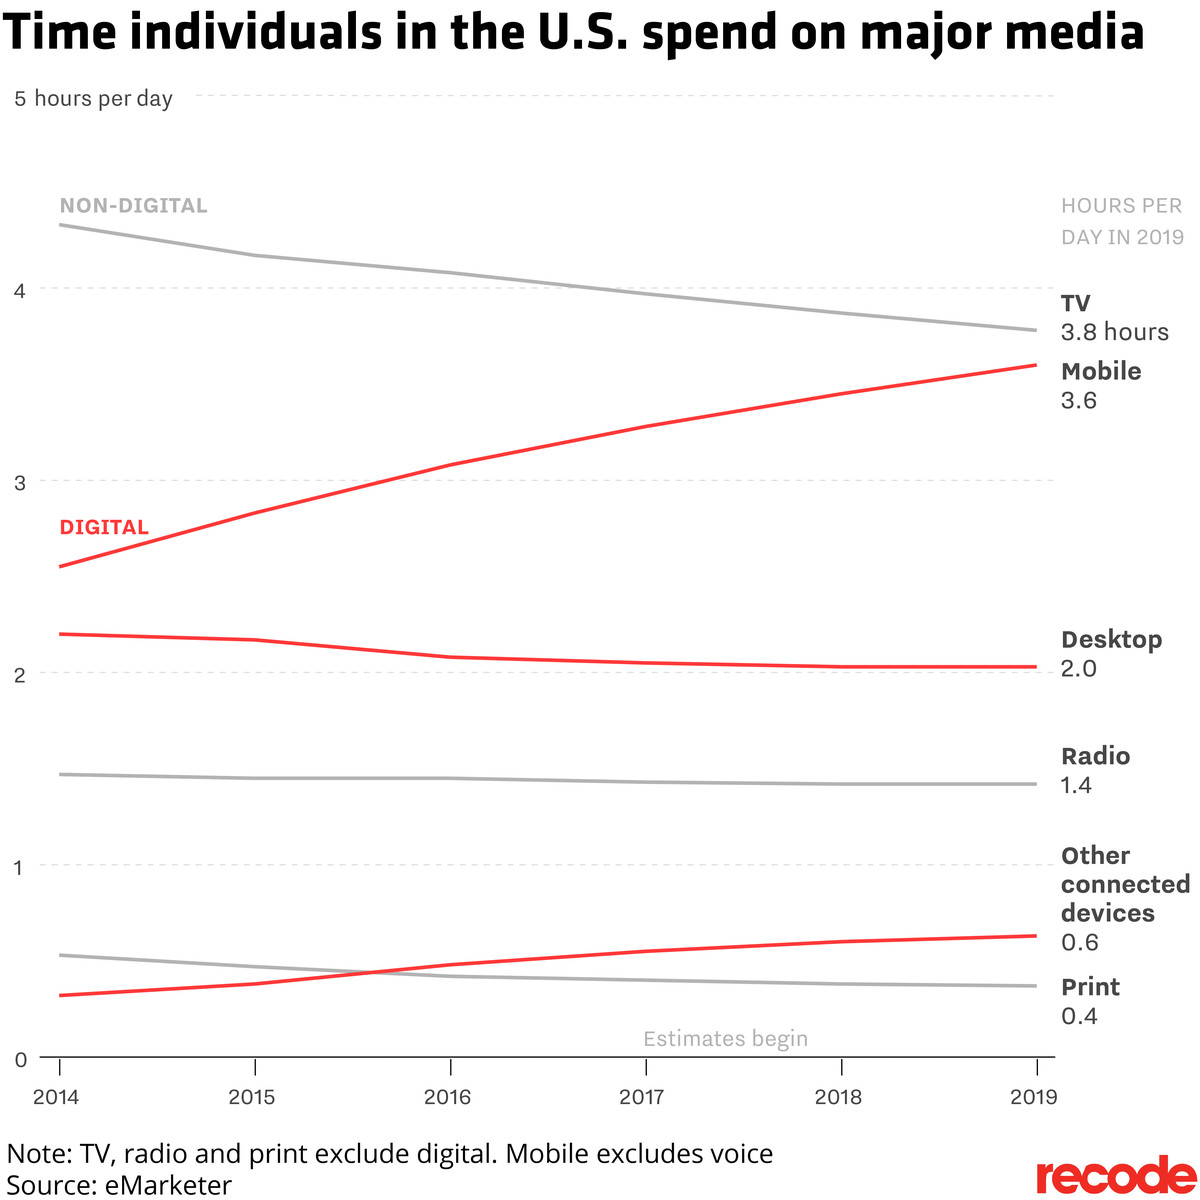 Chart of time individuals in the U.S. spend on different media